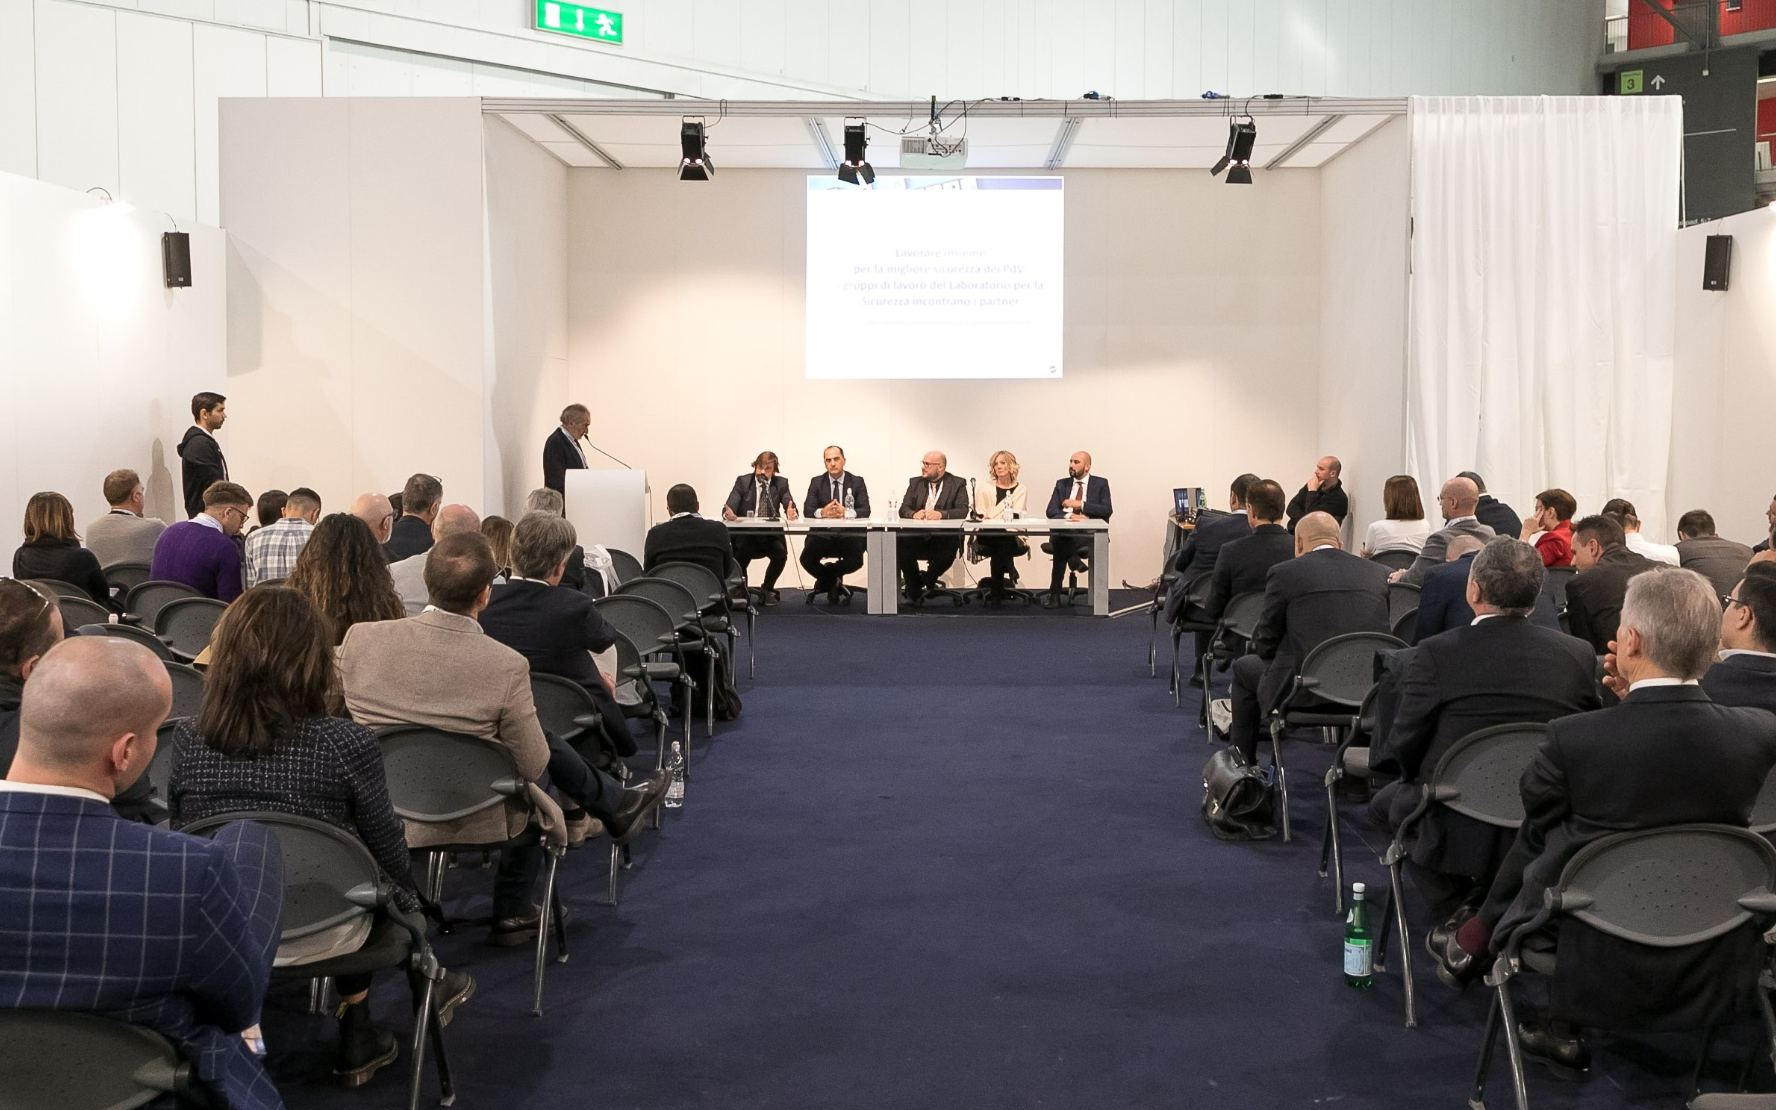 Smart Building Expo to host the Milano Smart City Conference